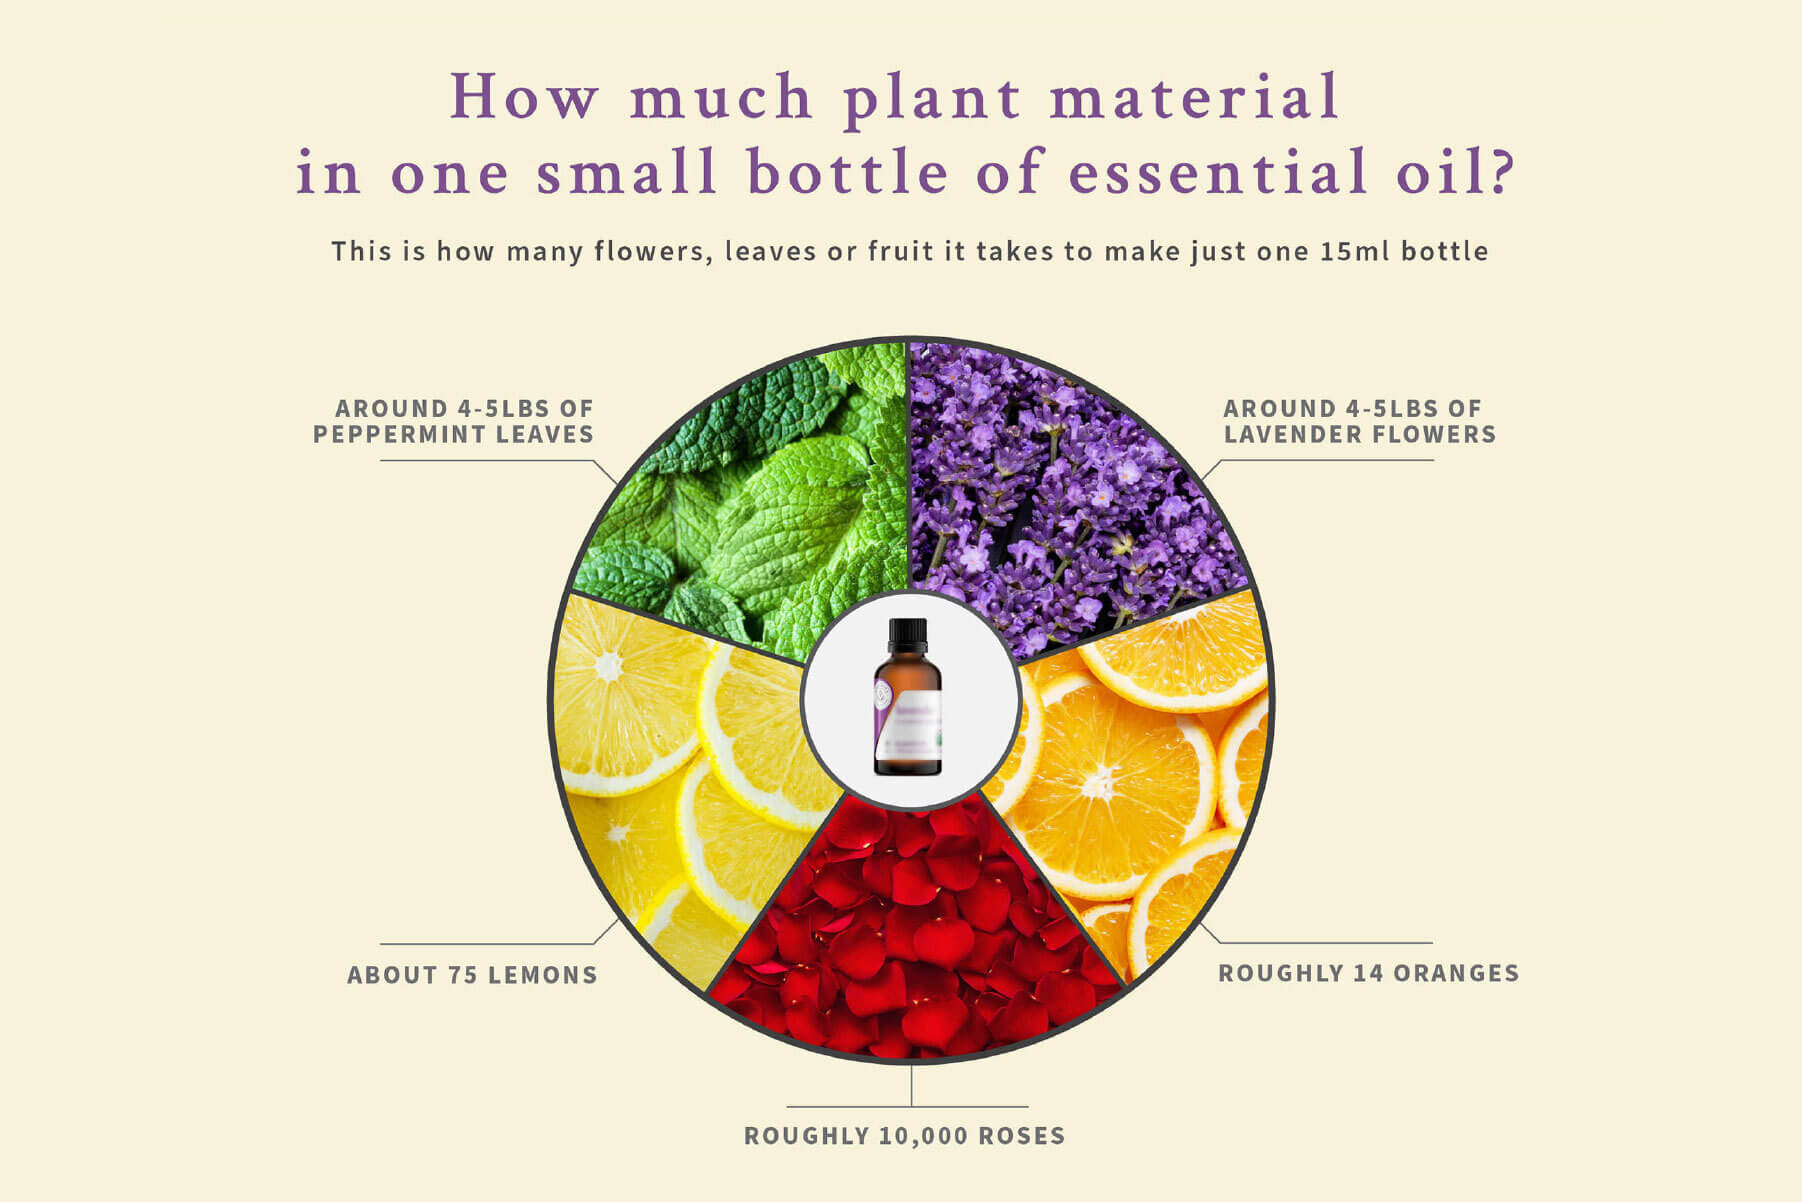 how much plant material in one small bottle of essential oil